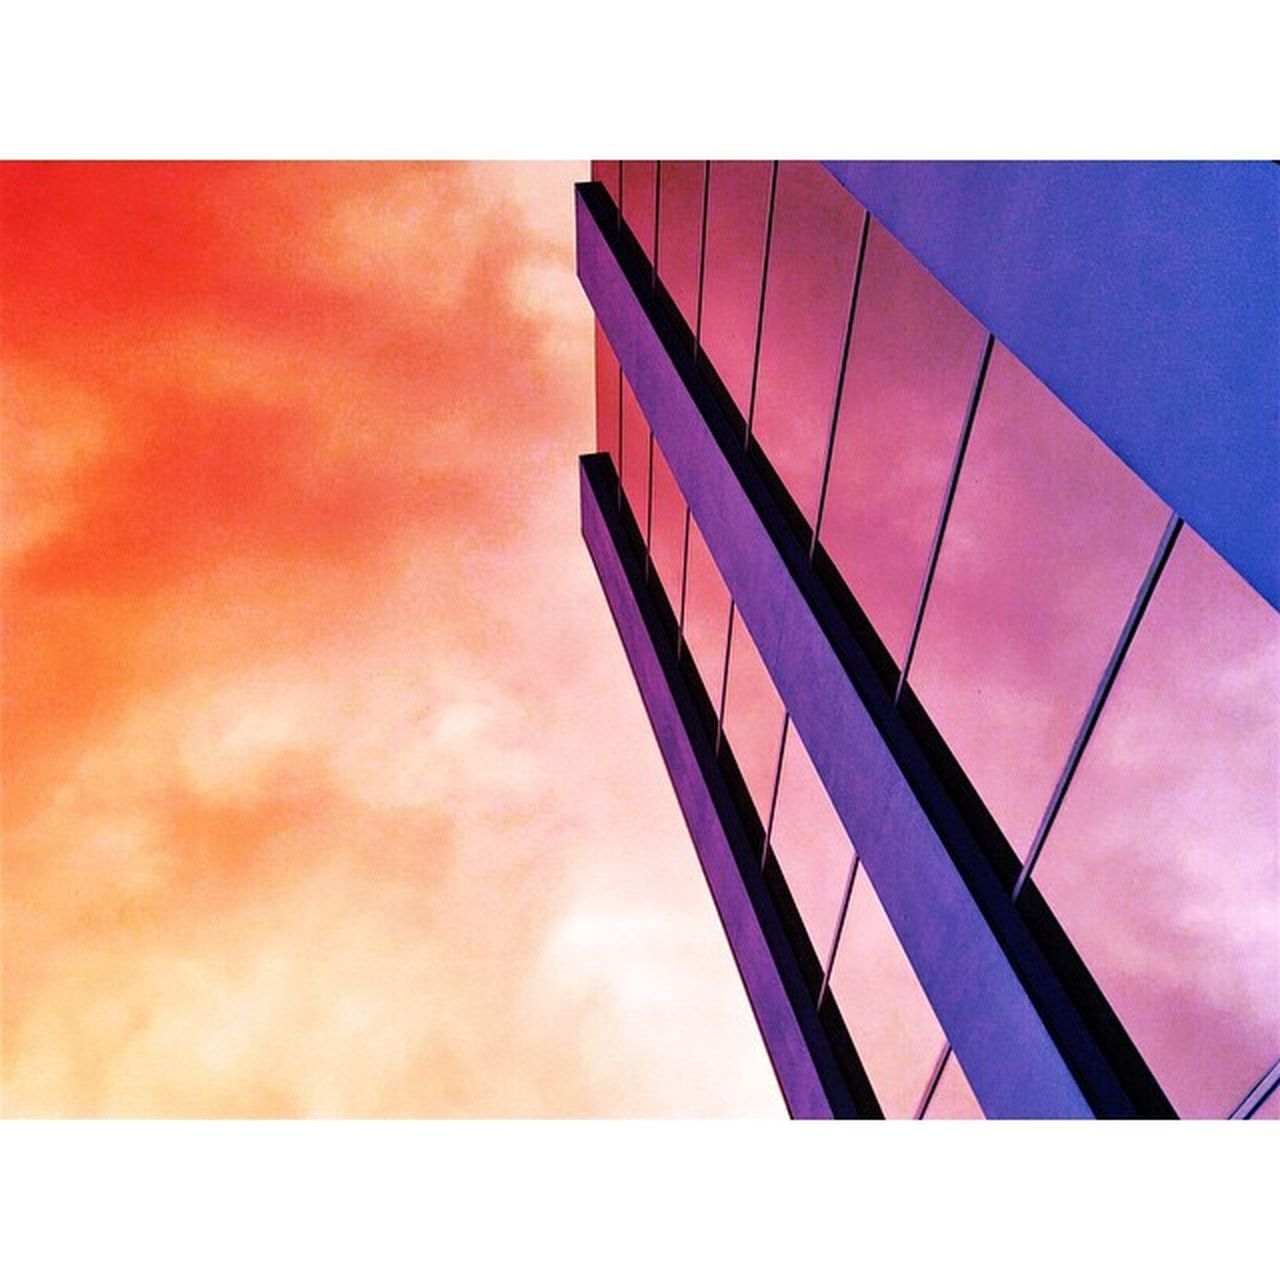 architecture, building exterior, built structure, low angle view, modern, sky, skyscraper, city, no people, outdoors, cloud - sky, corporate business, tall, day, travel destinations